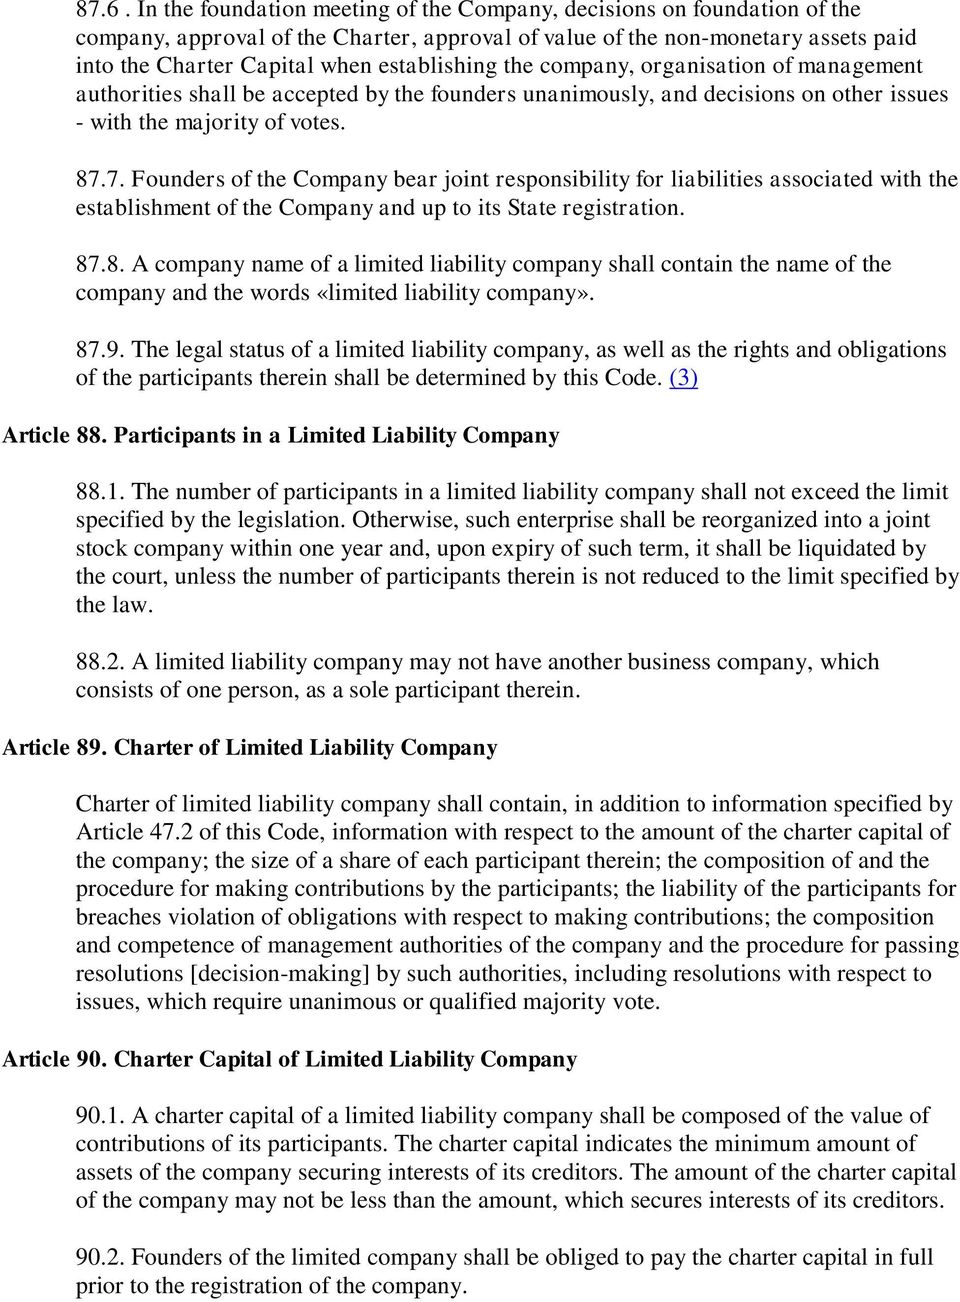 7. Founders of the Company bear joint responsibility for liabilities associated with the establishment of the Company and up to its State registration. 87